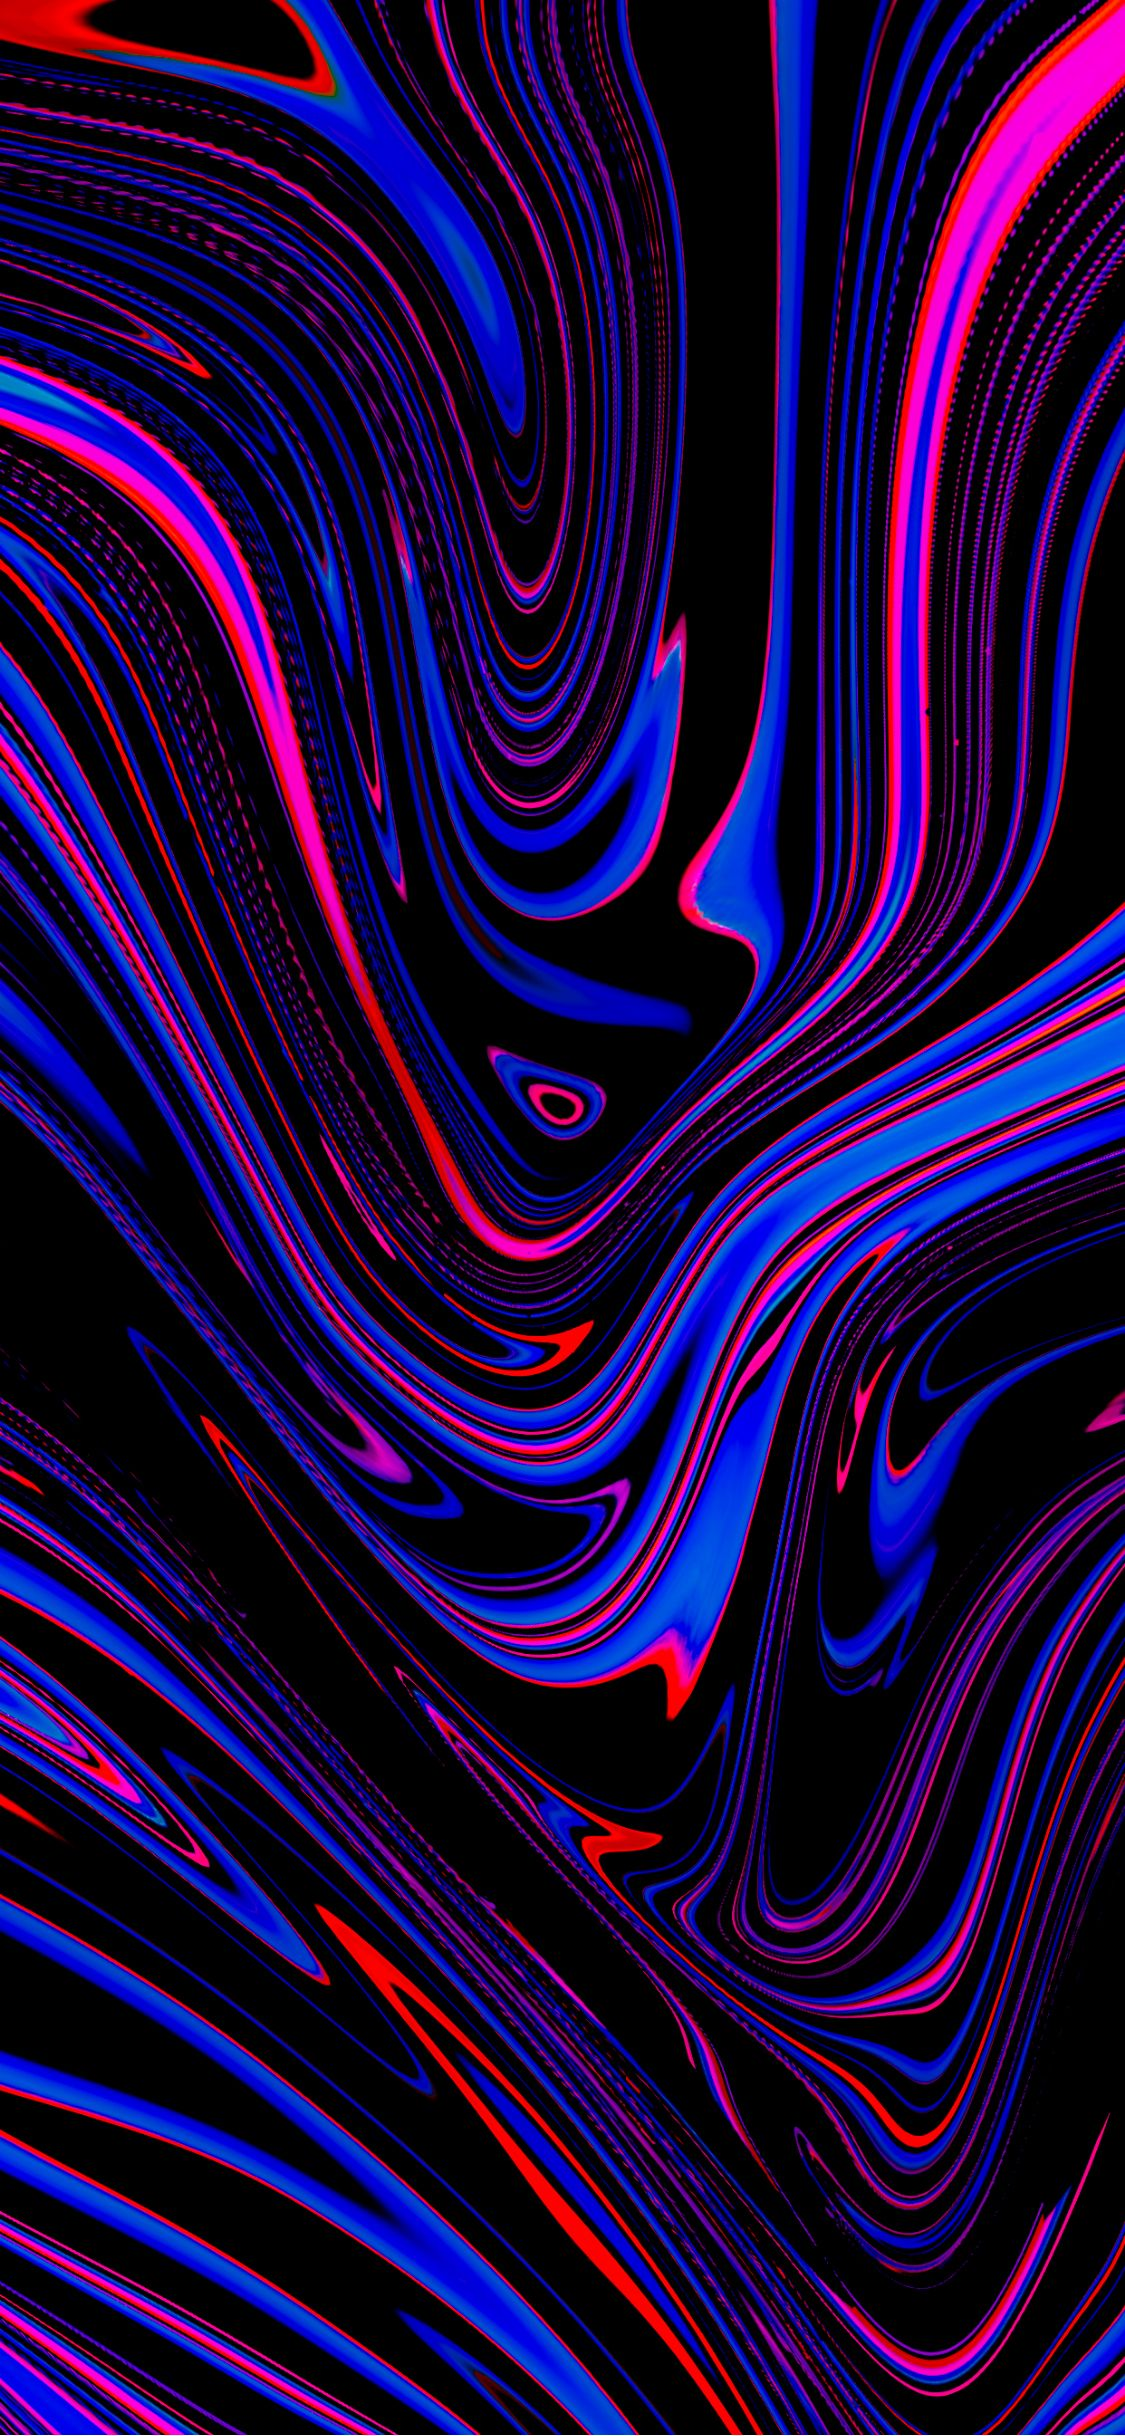 Liquid Fluid Art Abstraction Stains Colorful Wavy Art